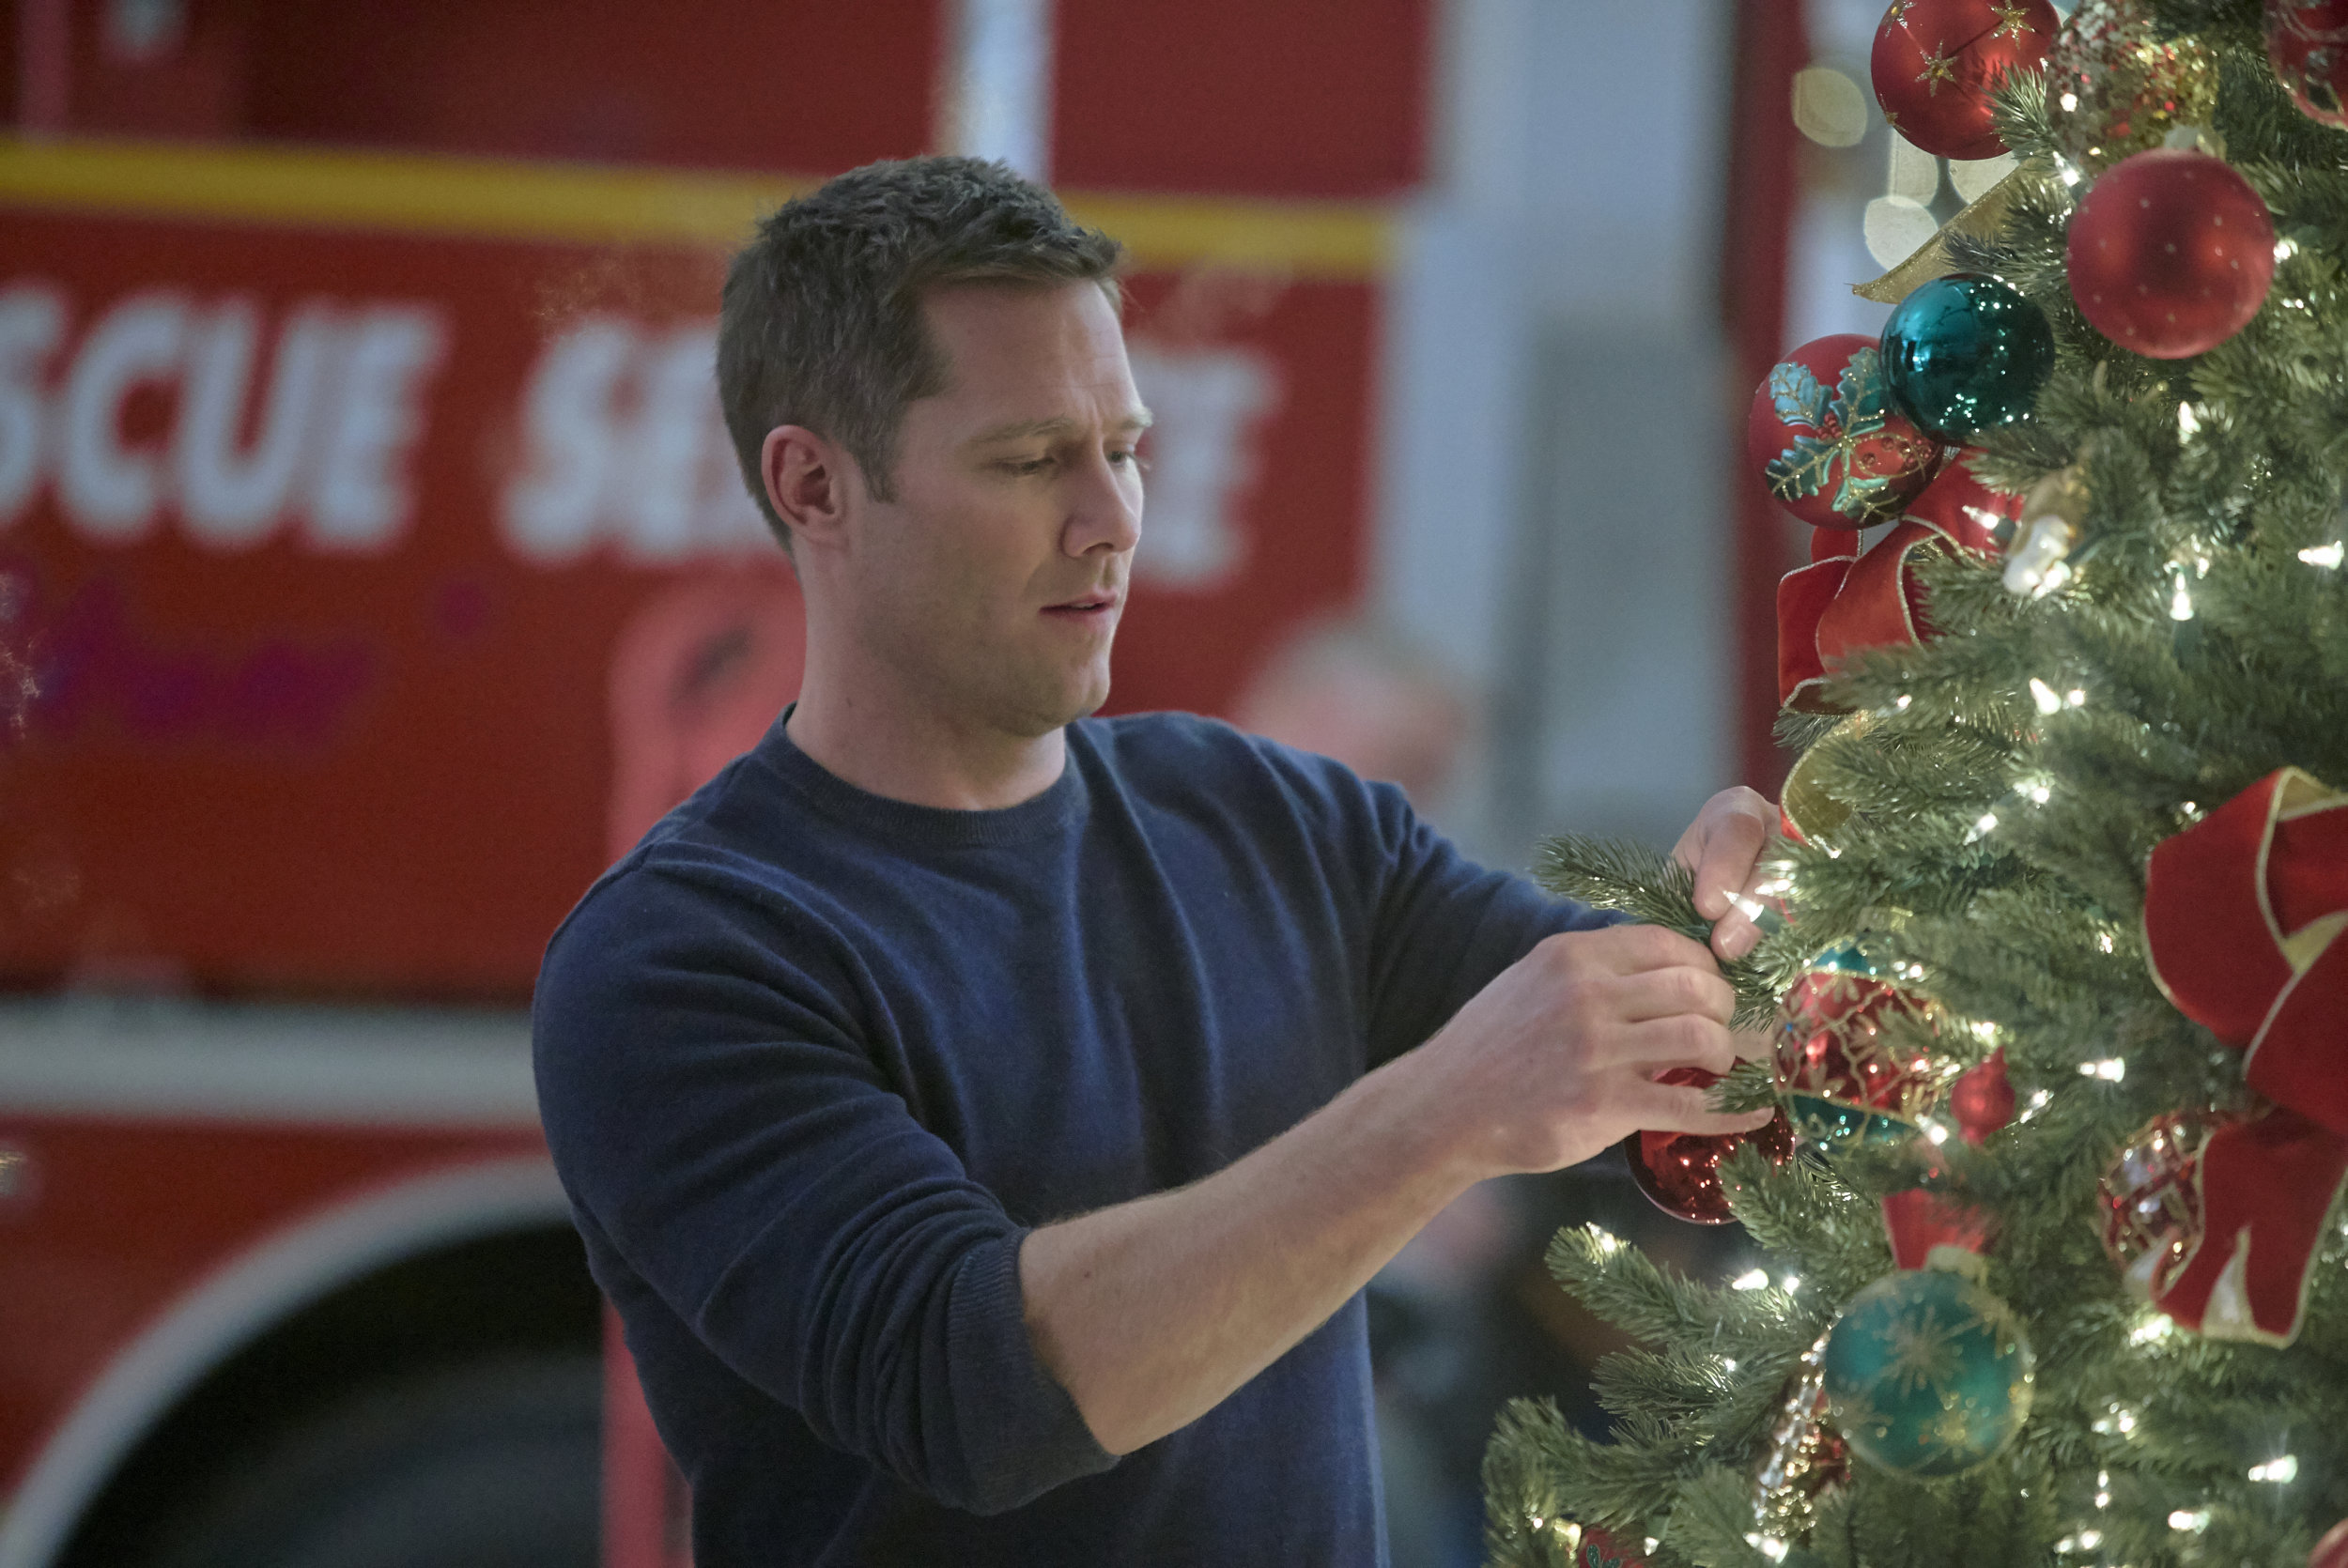 A Shoe Addicts Christmas.A Shoe Addicts Christmas Luke Macfarlane Luke